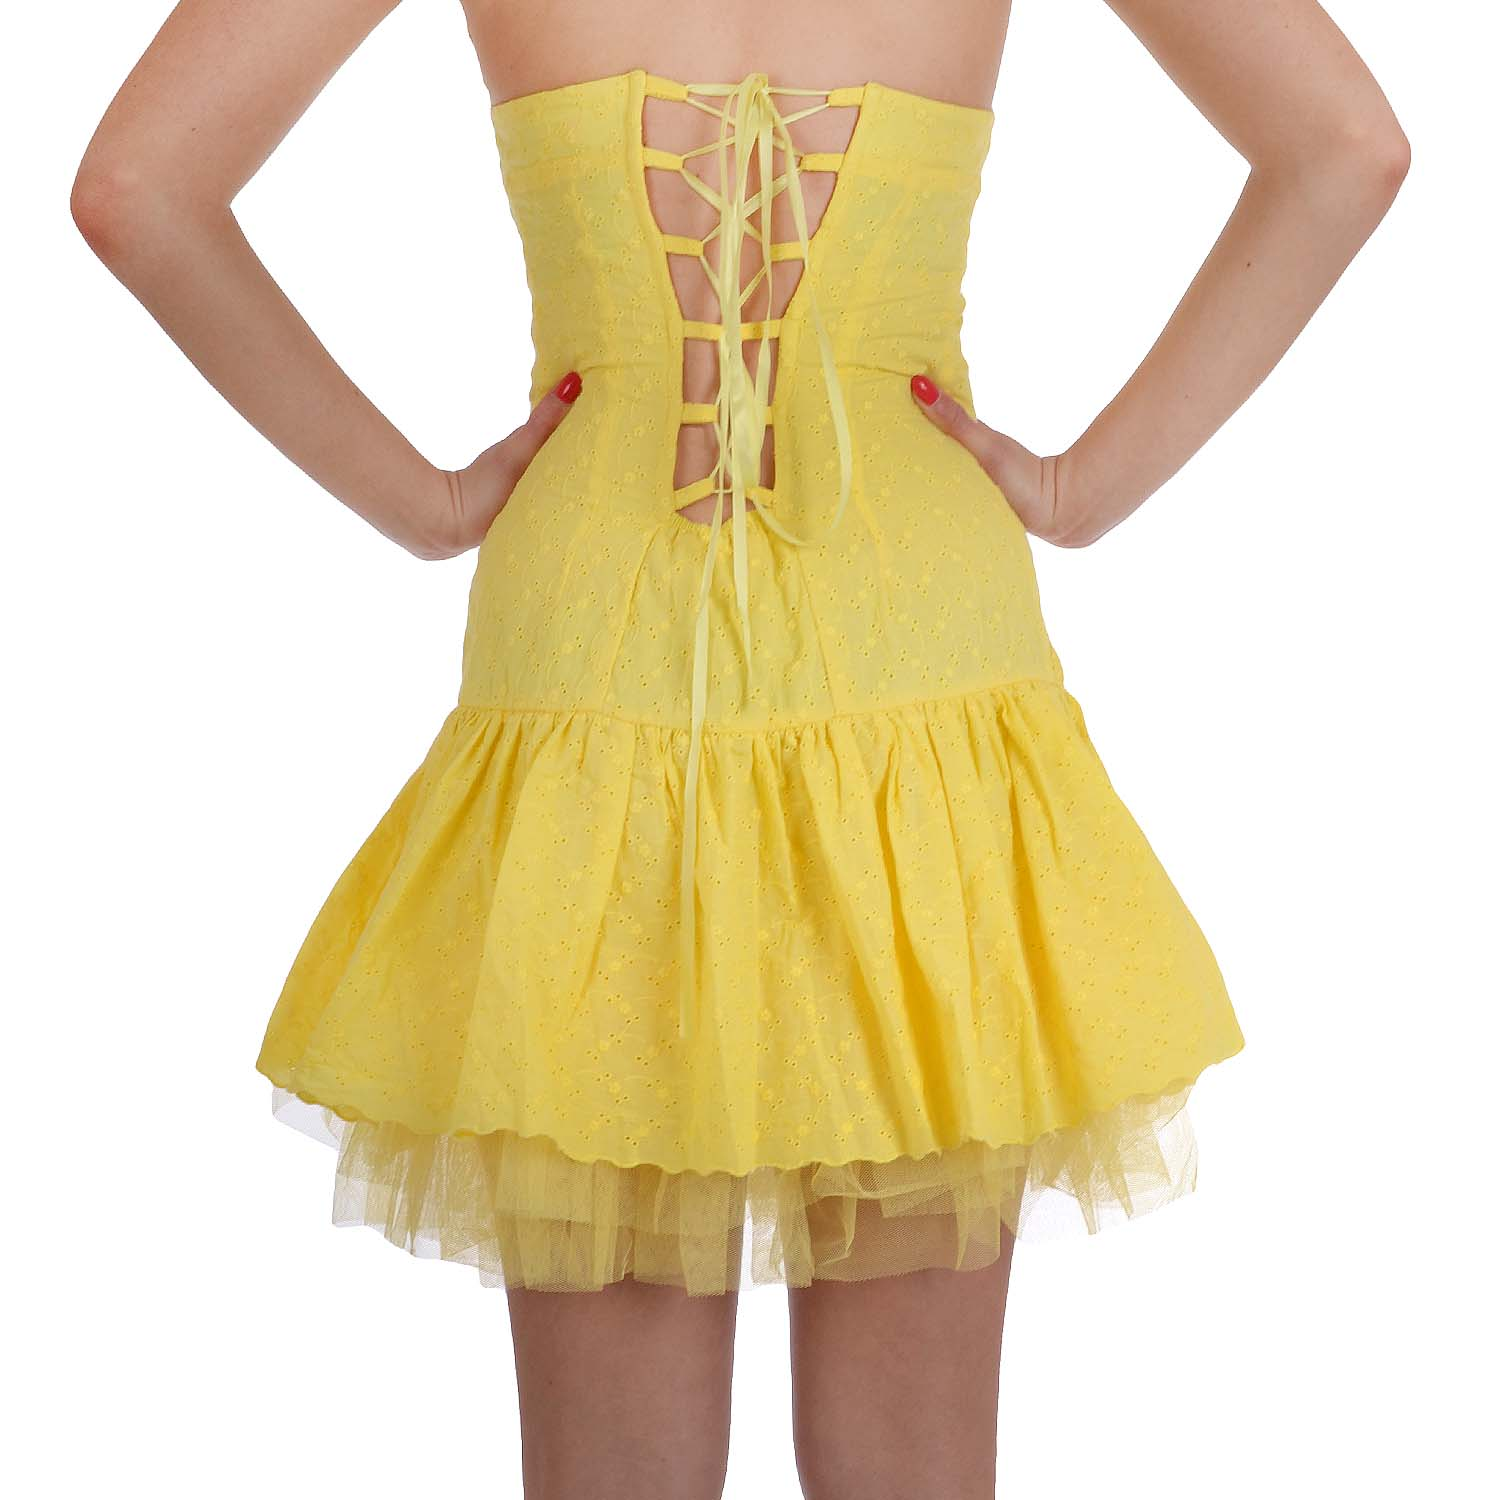 Miss-Posh-Womens-Broderie-Anglaise-Strapless-Lace-Boob-Tube-Skater-Dress